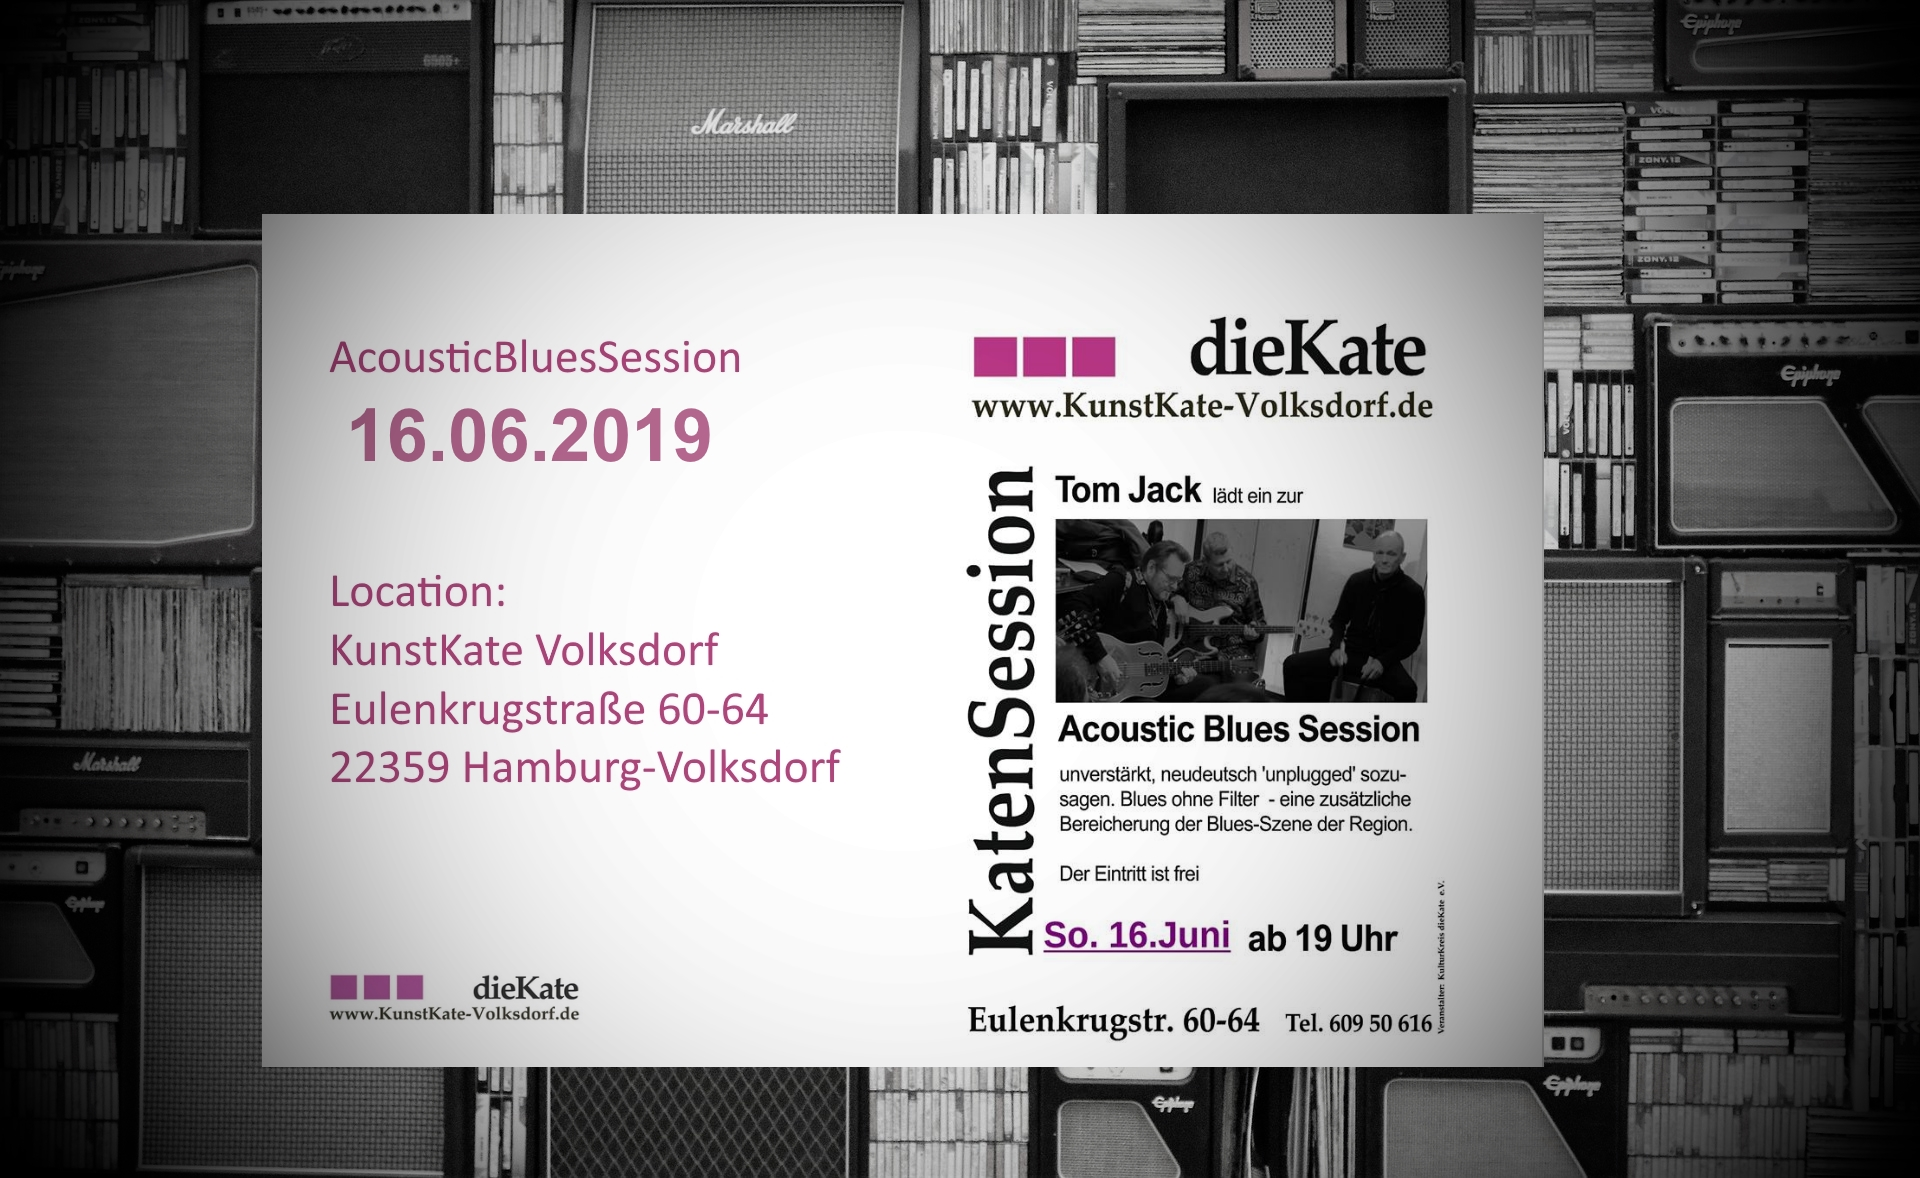 16.06.2019 – Acoustic Blues Session (ABS) – KunstKate Volksdorf